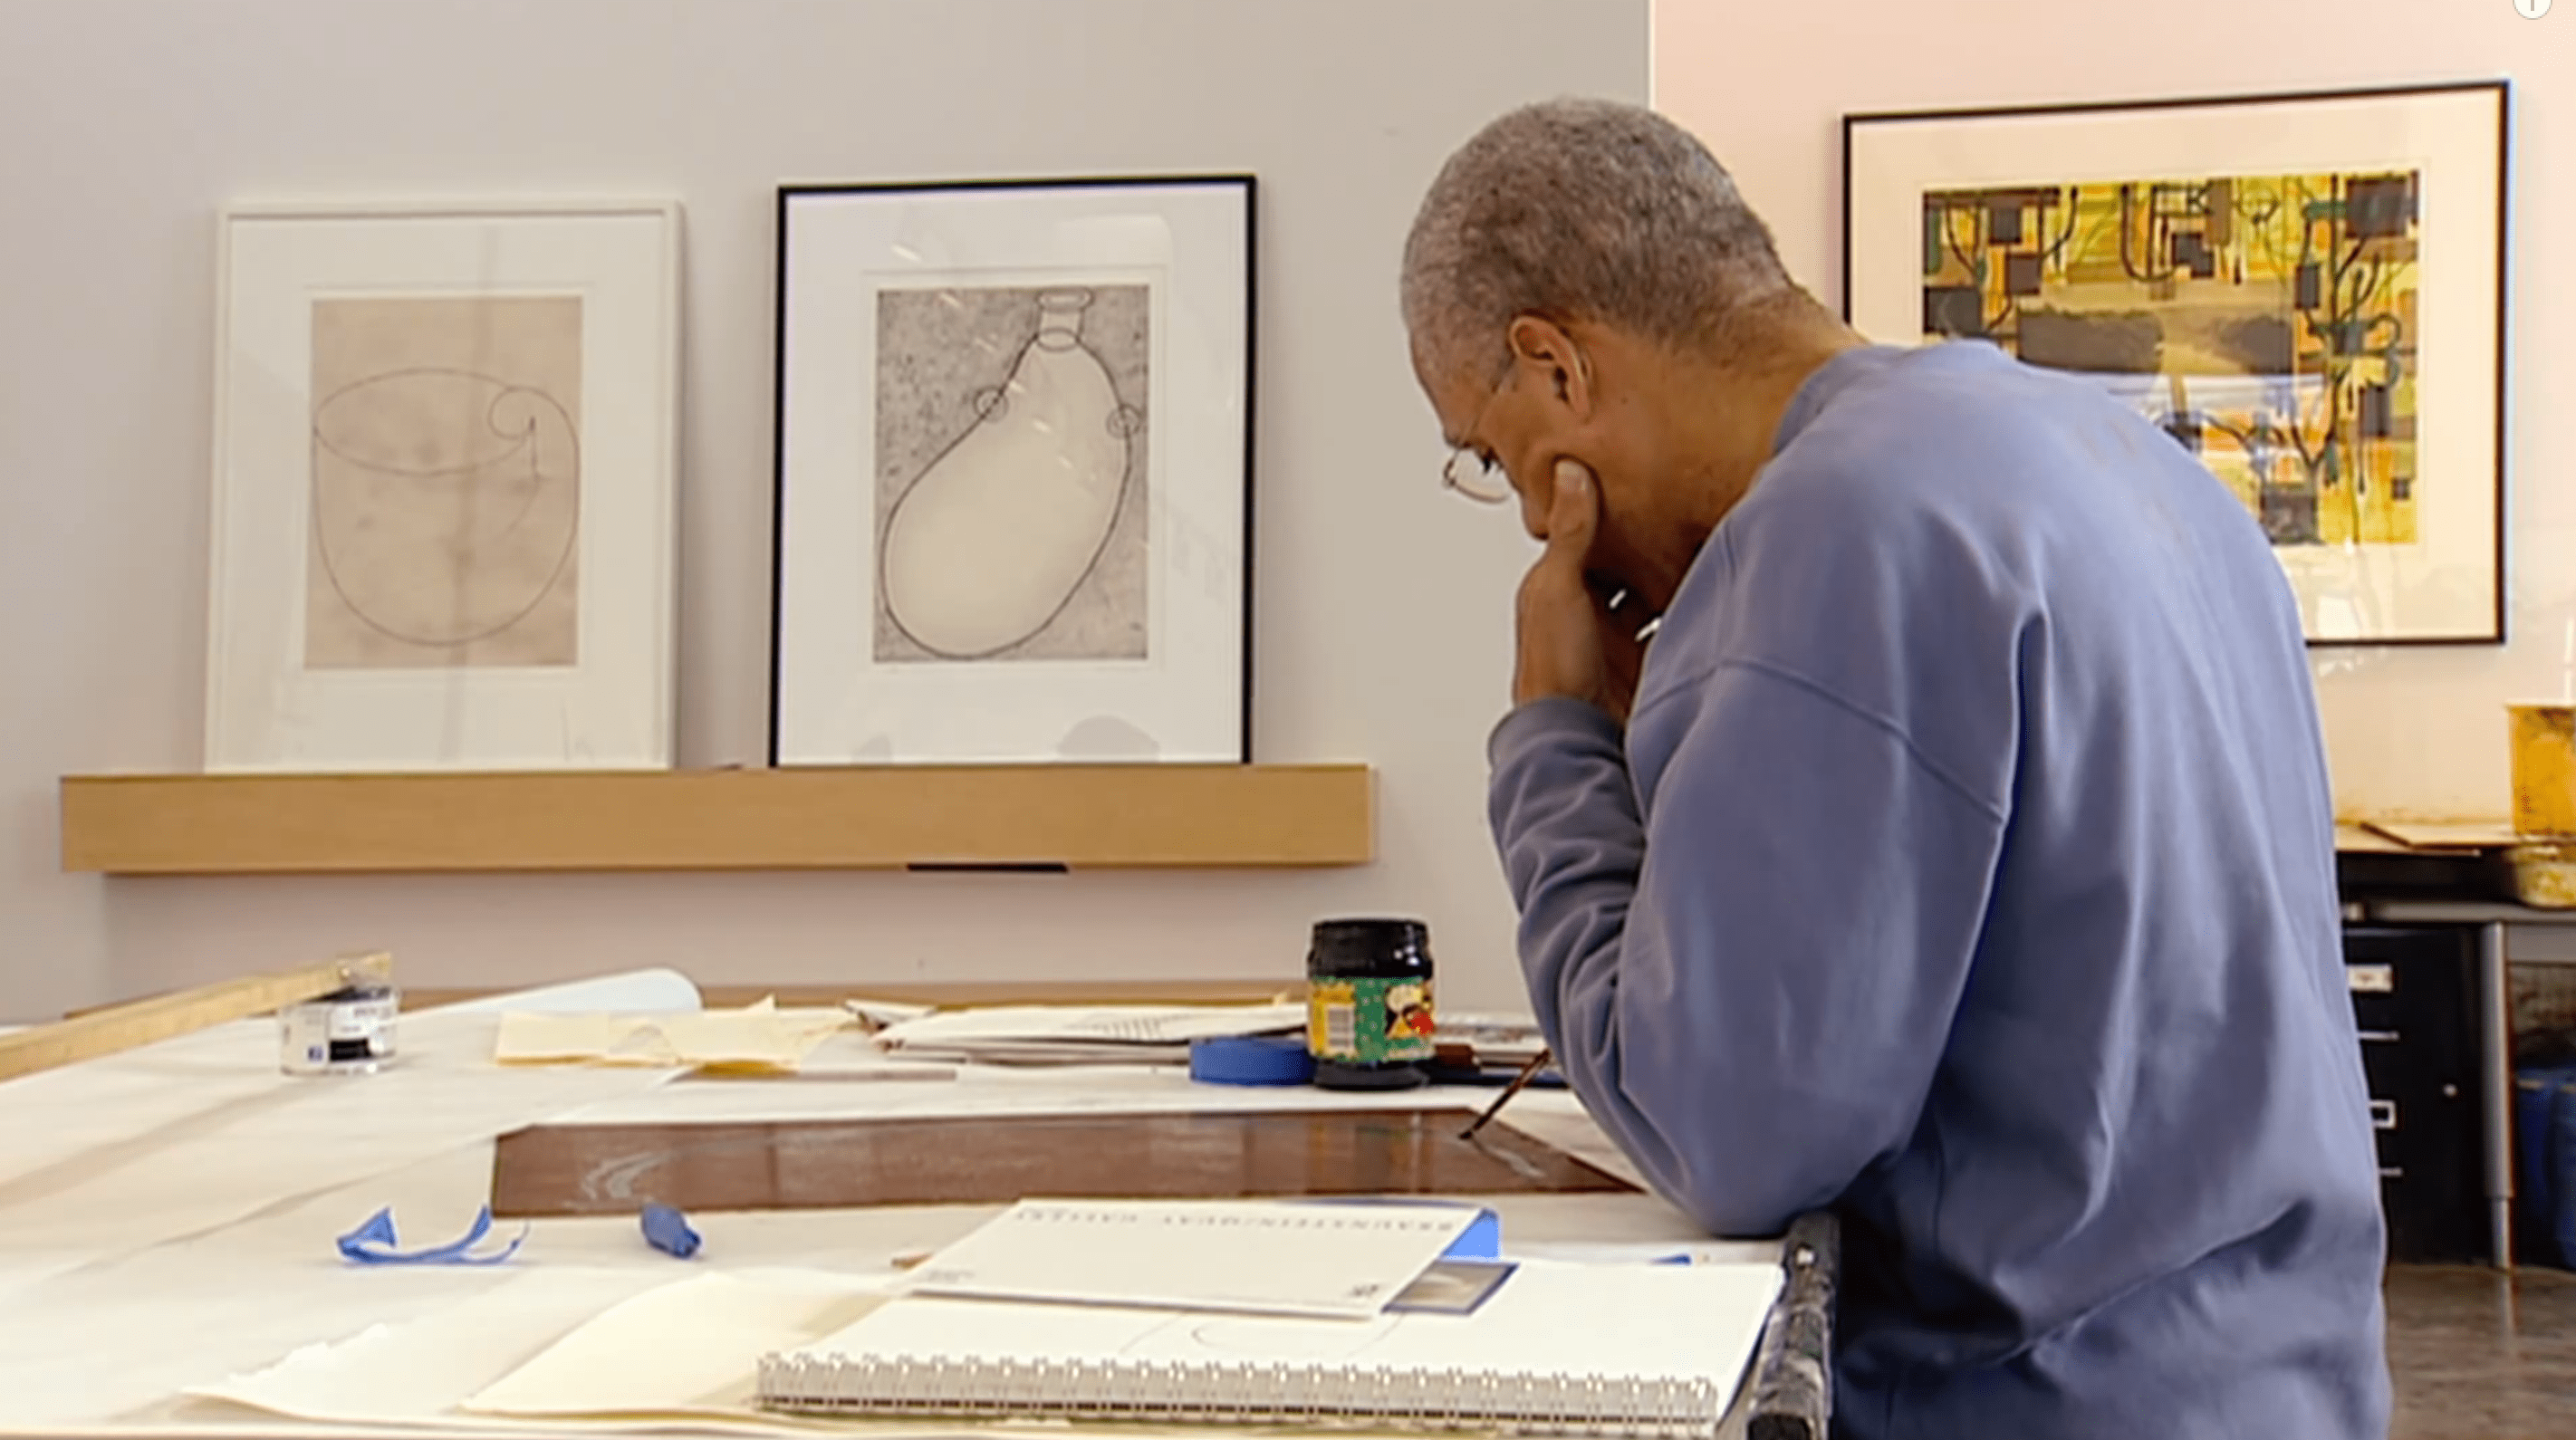 Martin Puryear - Art 21 Video Still - Printmaking